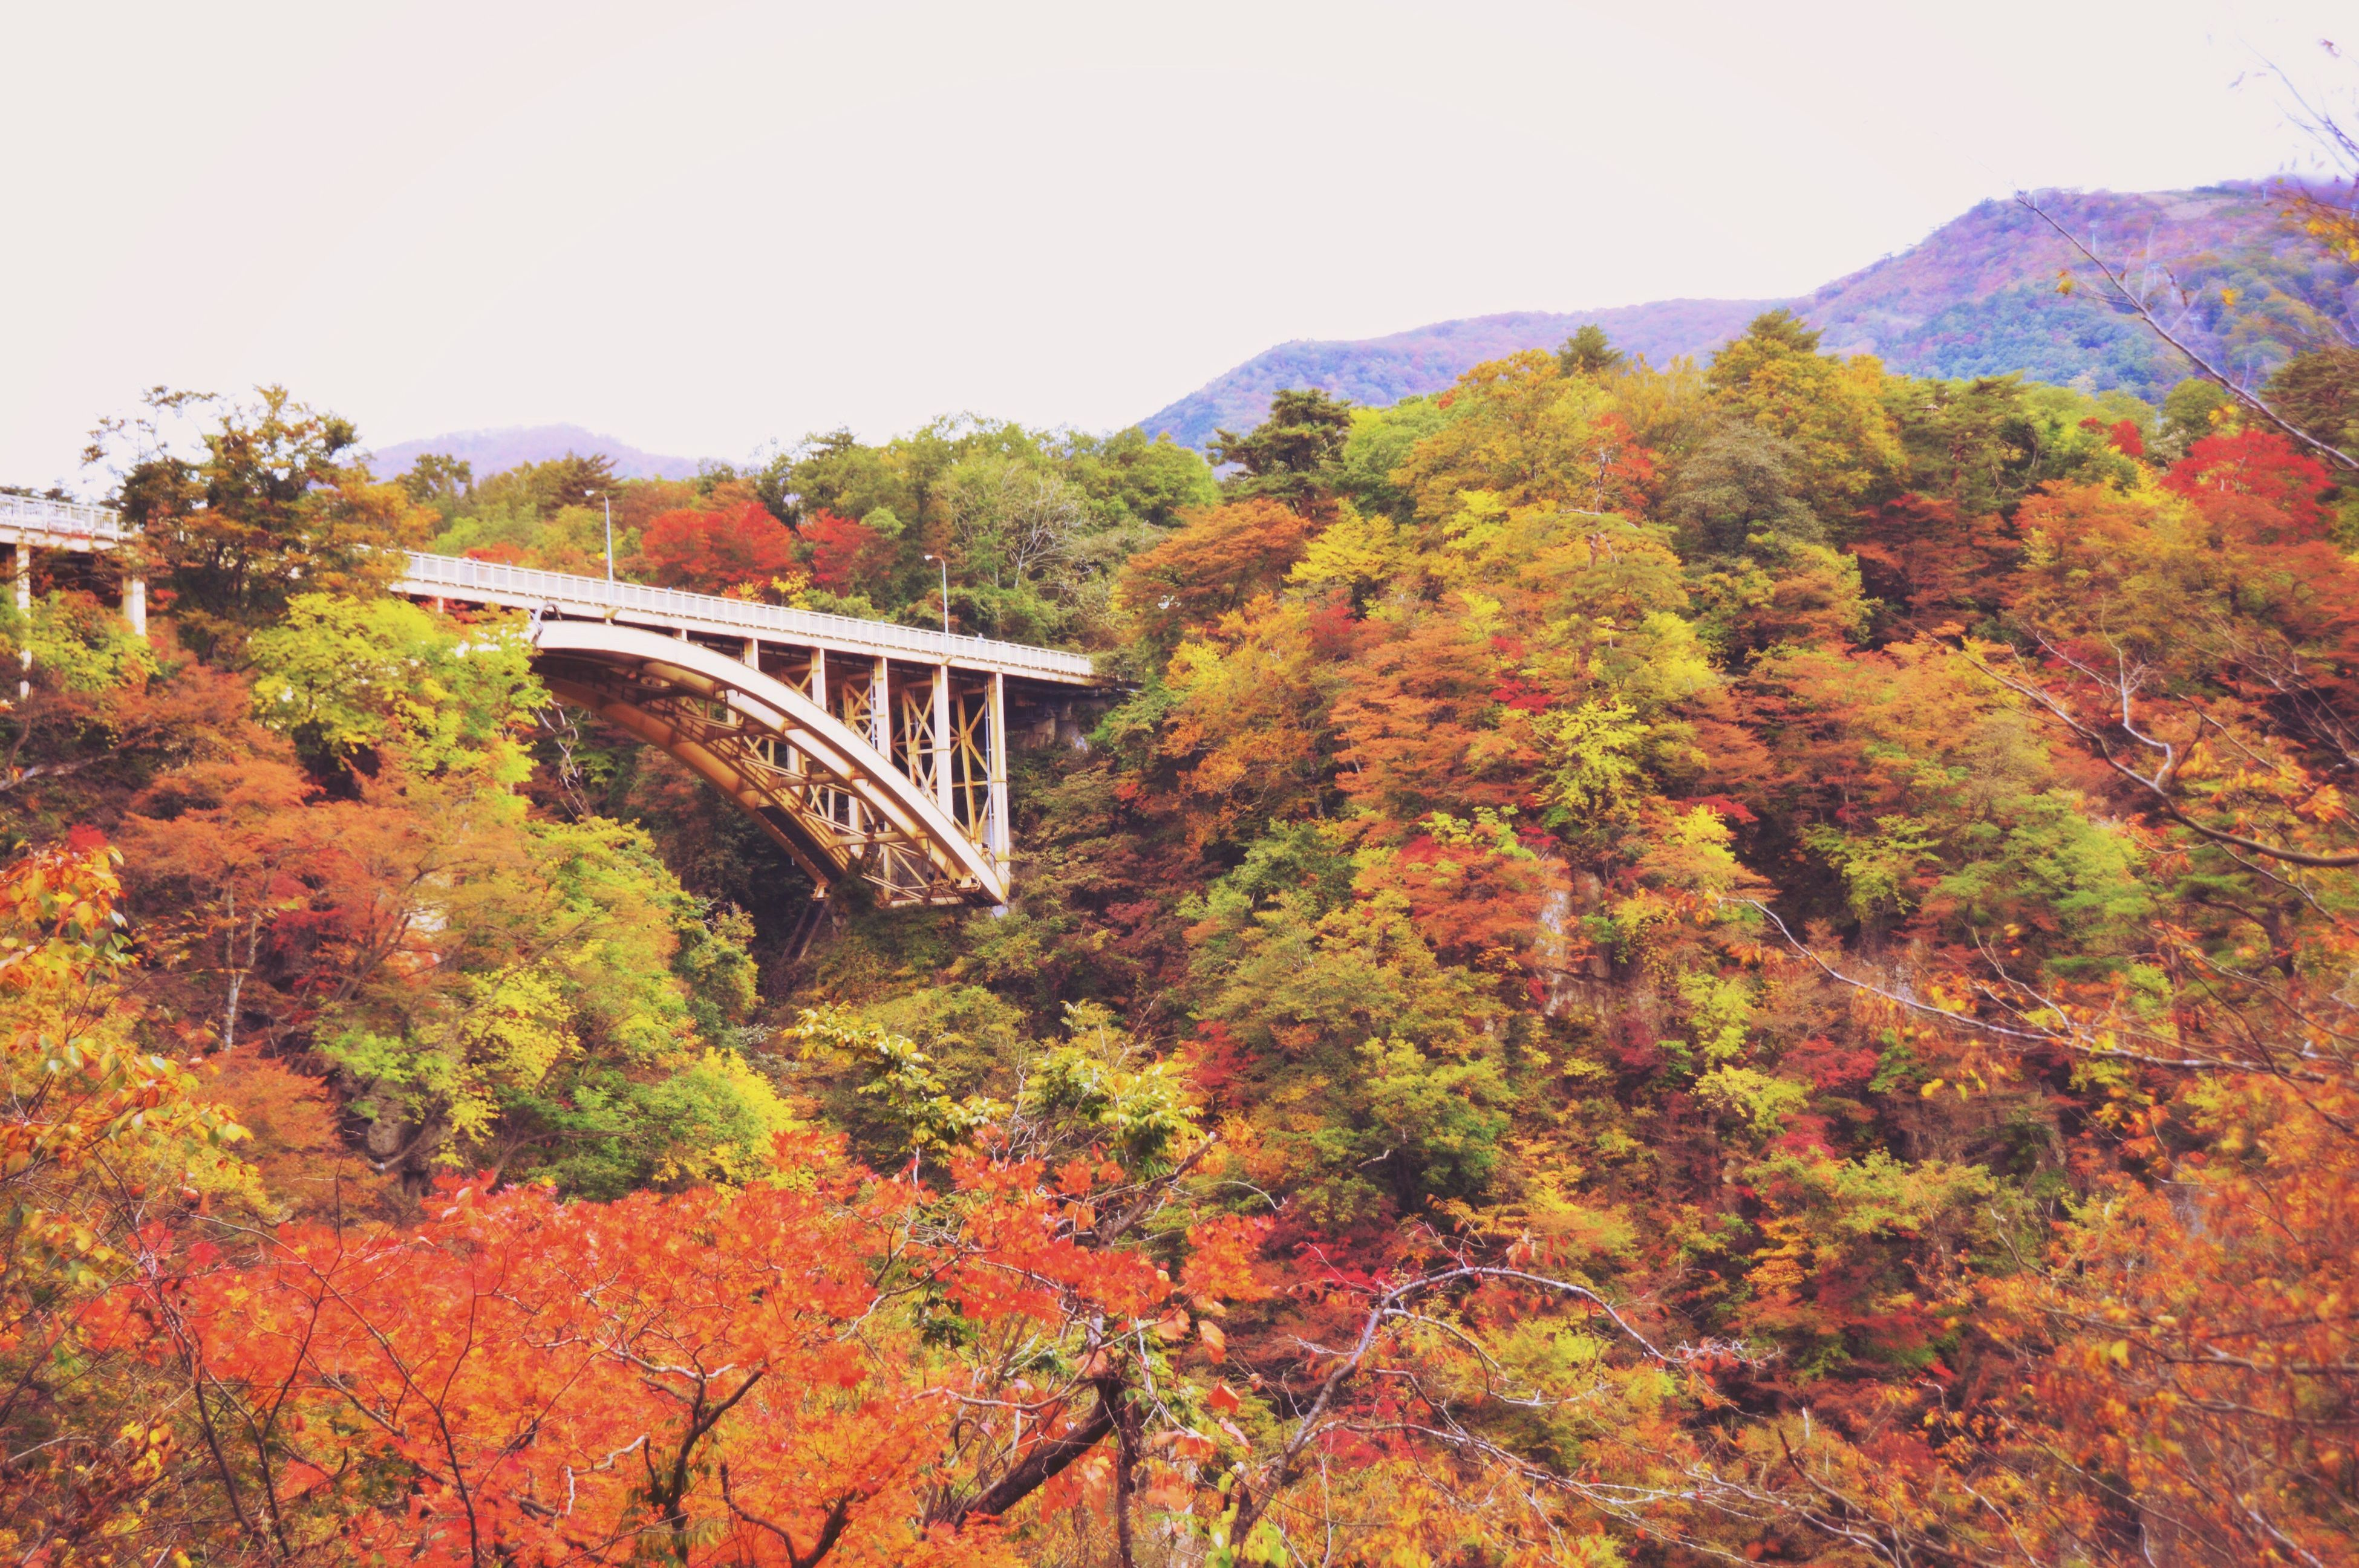 tree, growth, bridge - man made structure, clear sky, nature, change, autumn, plant, outdoors, architecture, built structure, day, beauty in nature, leaf, no people, scenics, railway bridge